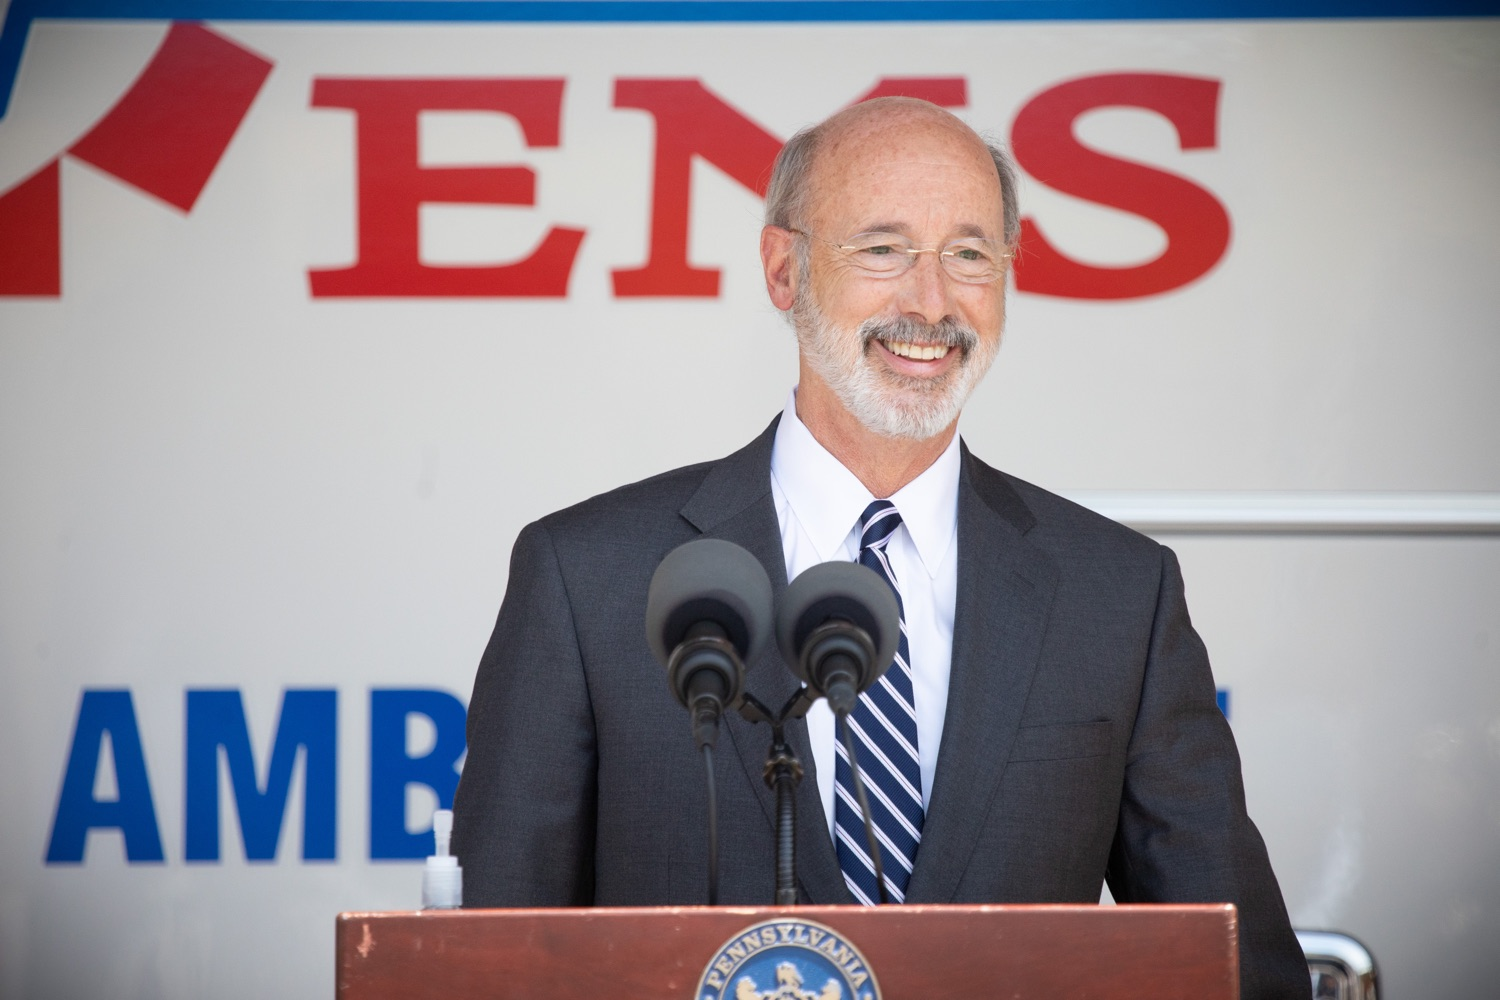 "<a href=""https://filesource.wostreaming.net/commonwealthofpa/photo/18180_gov_first_responders_dz_004.jpg"" target=""_blank"">⇣ Download Photo<br></a>Pennsylvania Governor Tom Wolf speaking to the press. Governor Tom Wolf visited the Millersville location of Lancaster EMS today to thank first responders and learn about how they are adapting their critical work during the states response to the COVID-19 pandemic.  Millersville, PA  July 30, 2020"